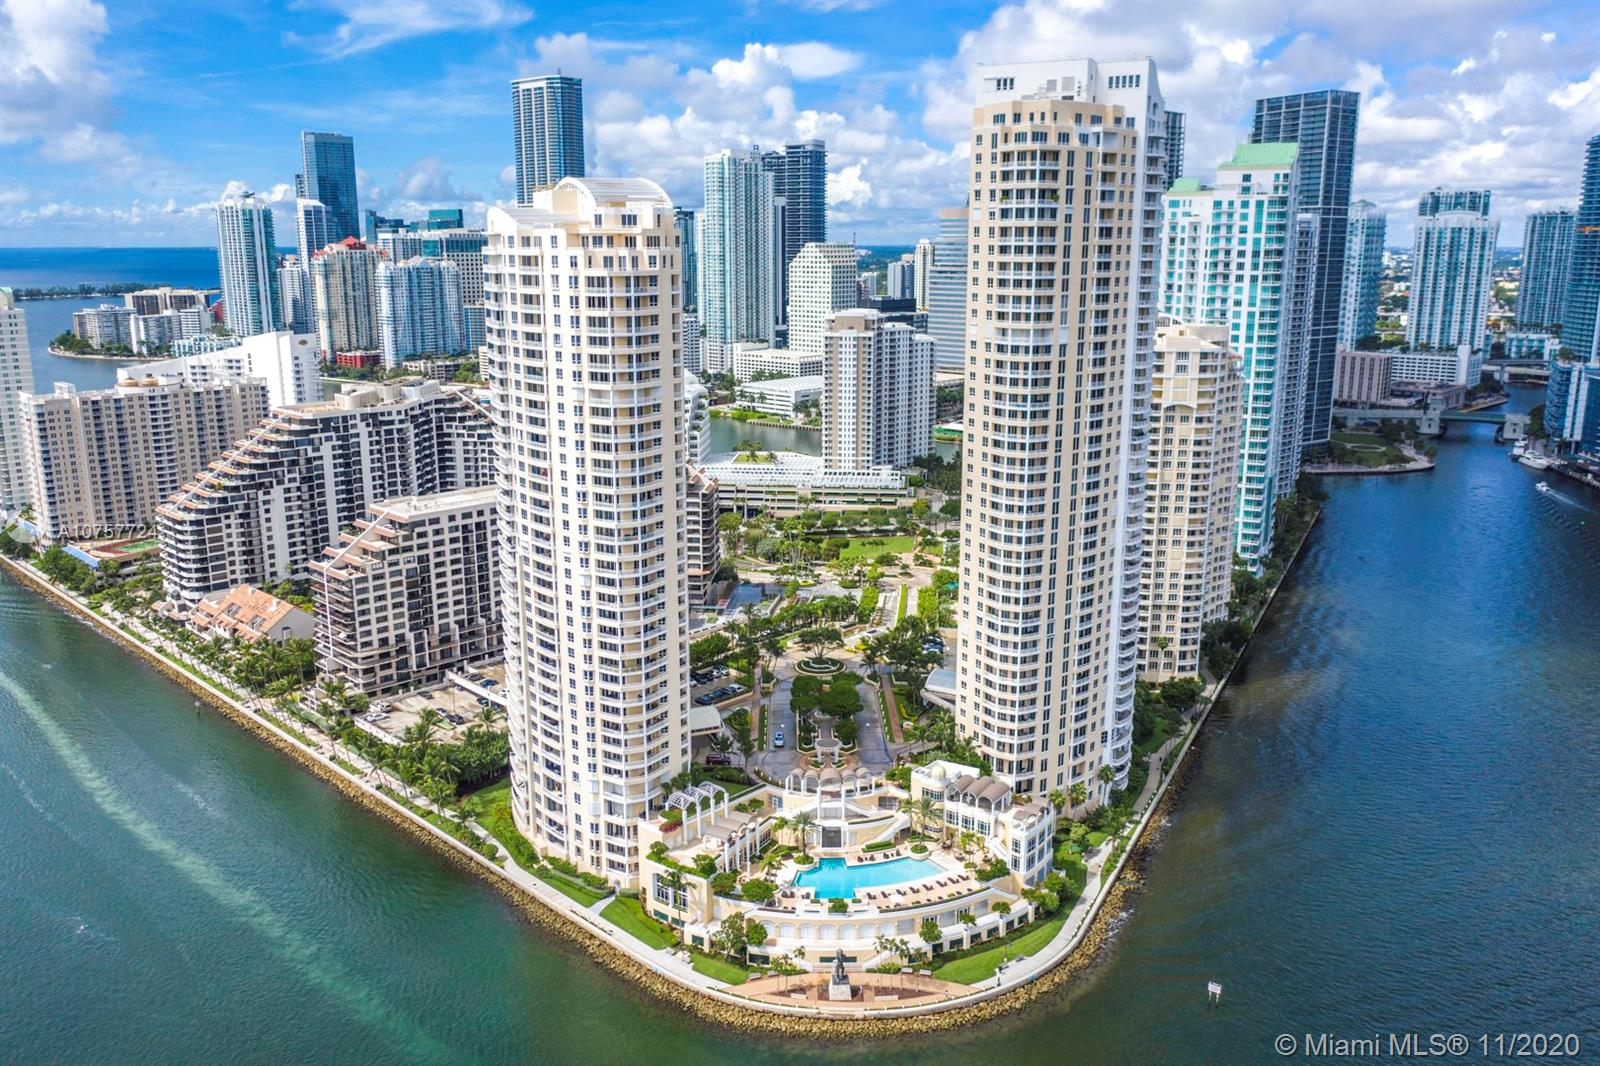 Prestigious & Perfect NON obstructed View of Tequesta III!! Corner unit on Line 1 with wraparound balcony overlooking the stunning direct Open Waters, This exquisite condo located at the prime location of Brikell Key Island with top of line amenities offering a FIVE STARS SERVICE around the Island. It  offers hight Ceilings compare to others 3 Large Bedrooms with 2.5 Baths, 2 Parking Spaces, Storage Room, New Floors and Remodel Kitchen, Very open and bright kitchen leading to the balcony, pool area & turquoise waters. Enjoy the Private Island Living with no need to leave the key  and offering a 5 Stars Hotel, Step out the key & enjoy the night life full of sophisticated dinning restaurants, Shopping Mall with  prestigious top of the line boutiques, Museum, Ballet/Operas and much more.